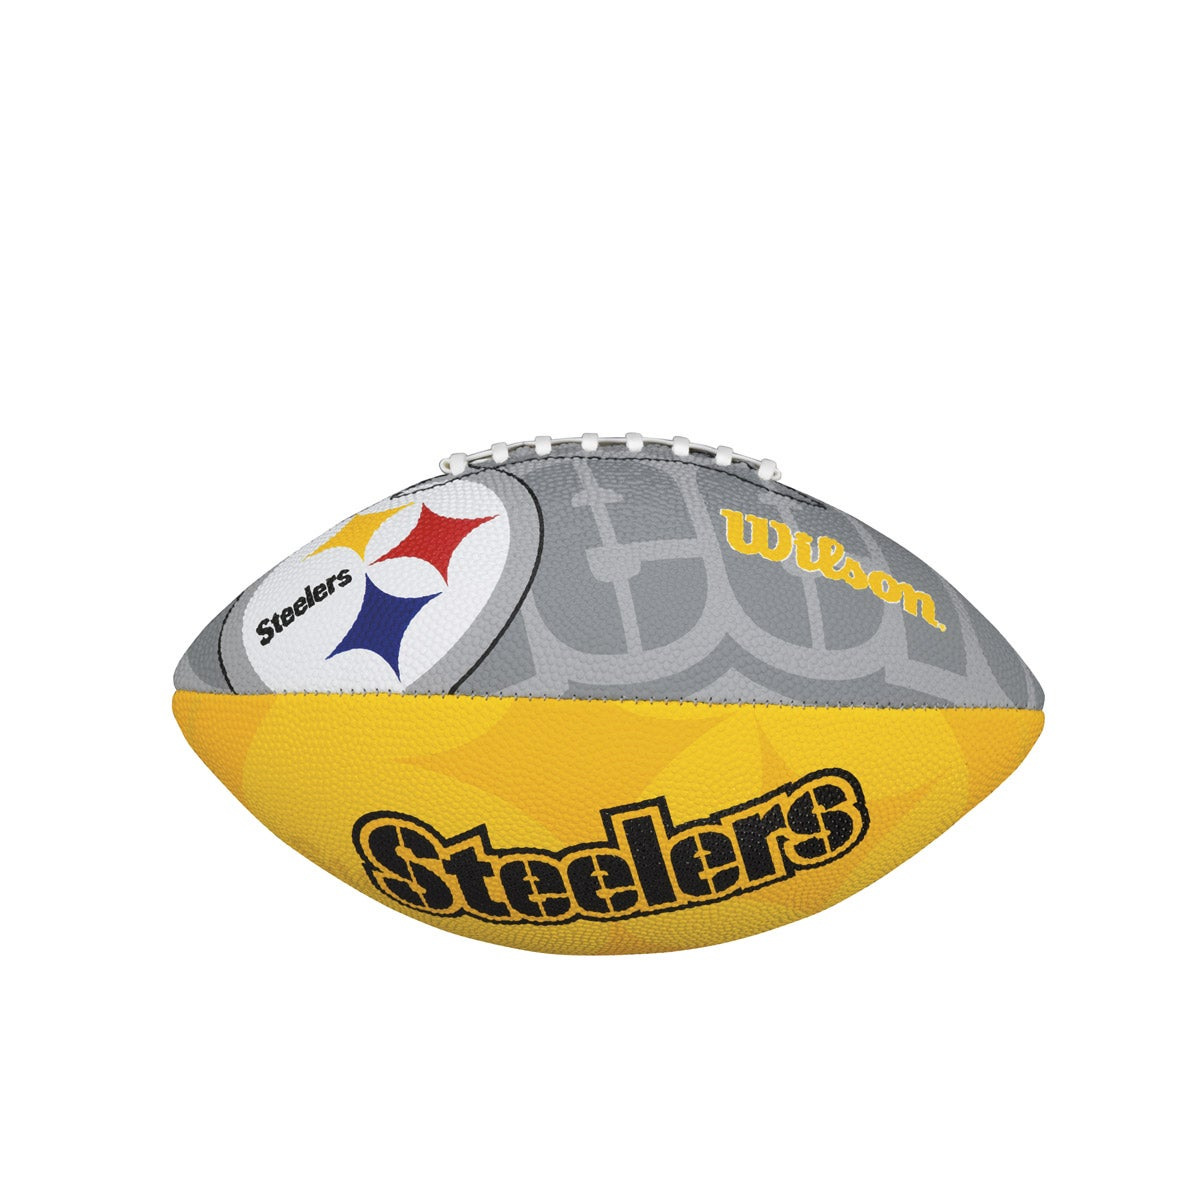 NFL TEAM LOGO JUNIOR SIZE FOOTBALL - PITTSBURGH STEELERS